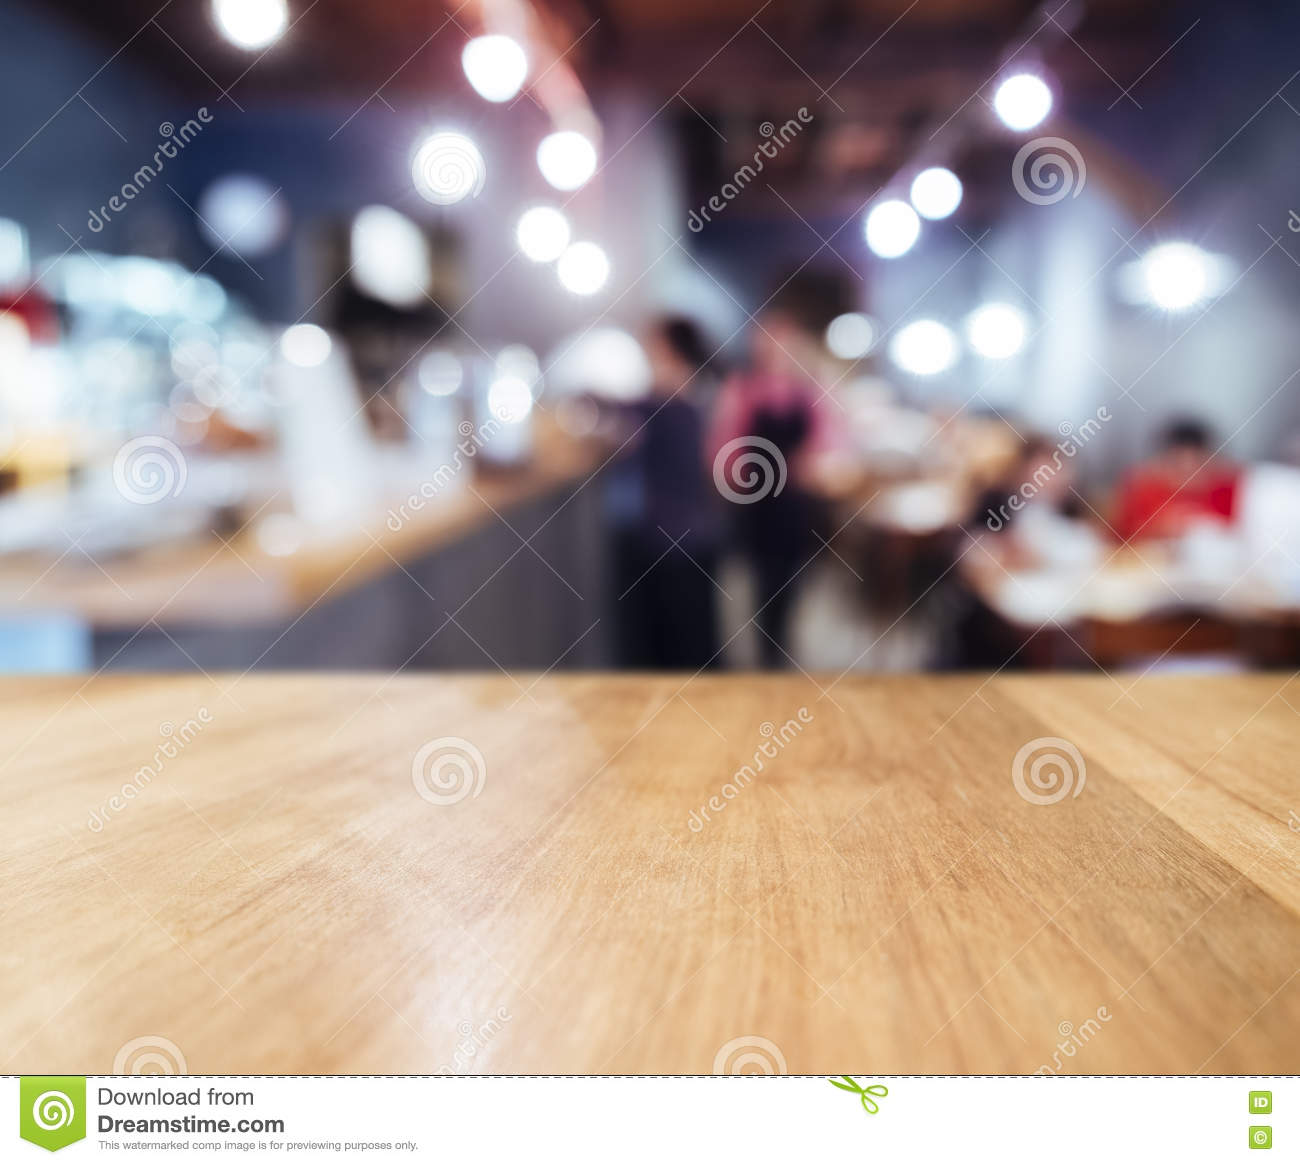 Restaurant Background With People table top counter blurred bar restaurant background with people